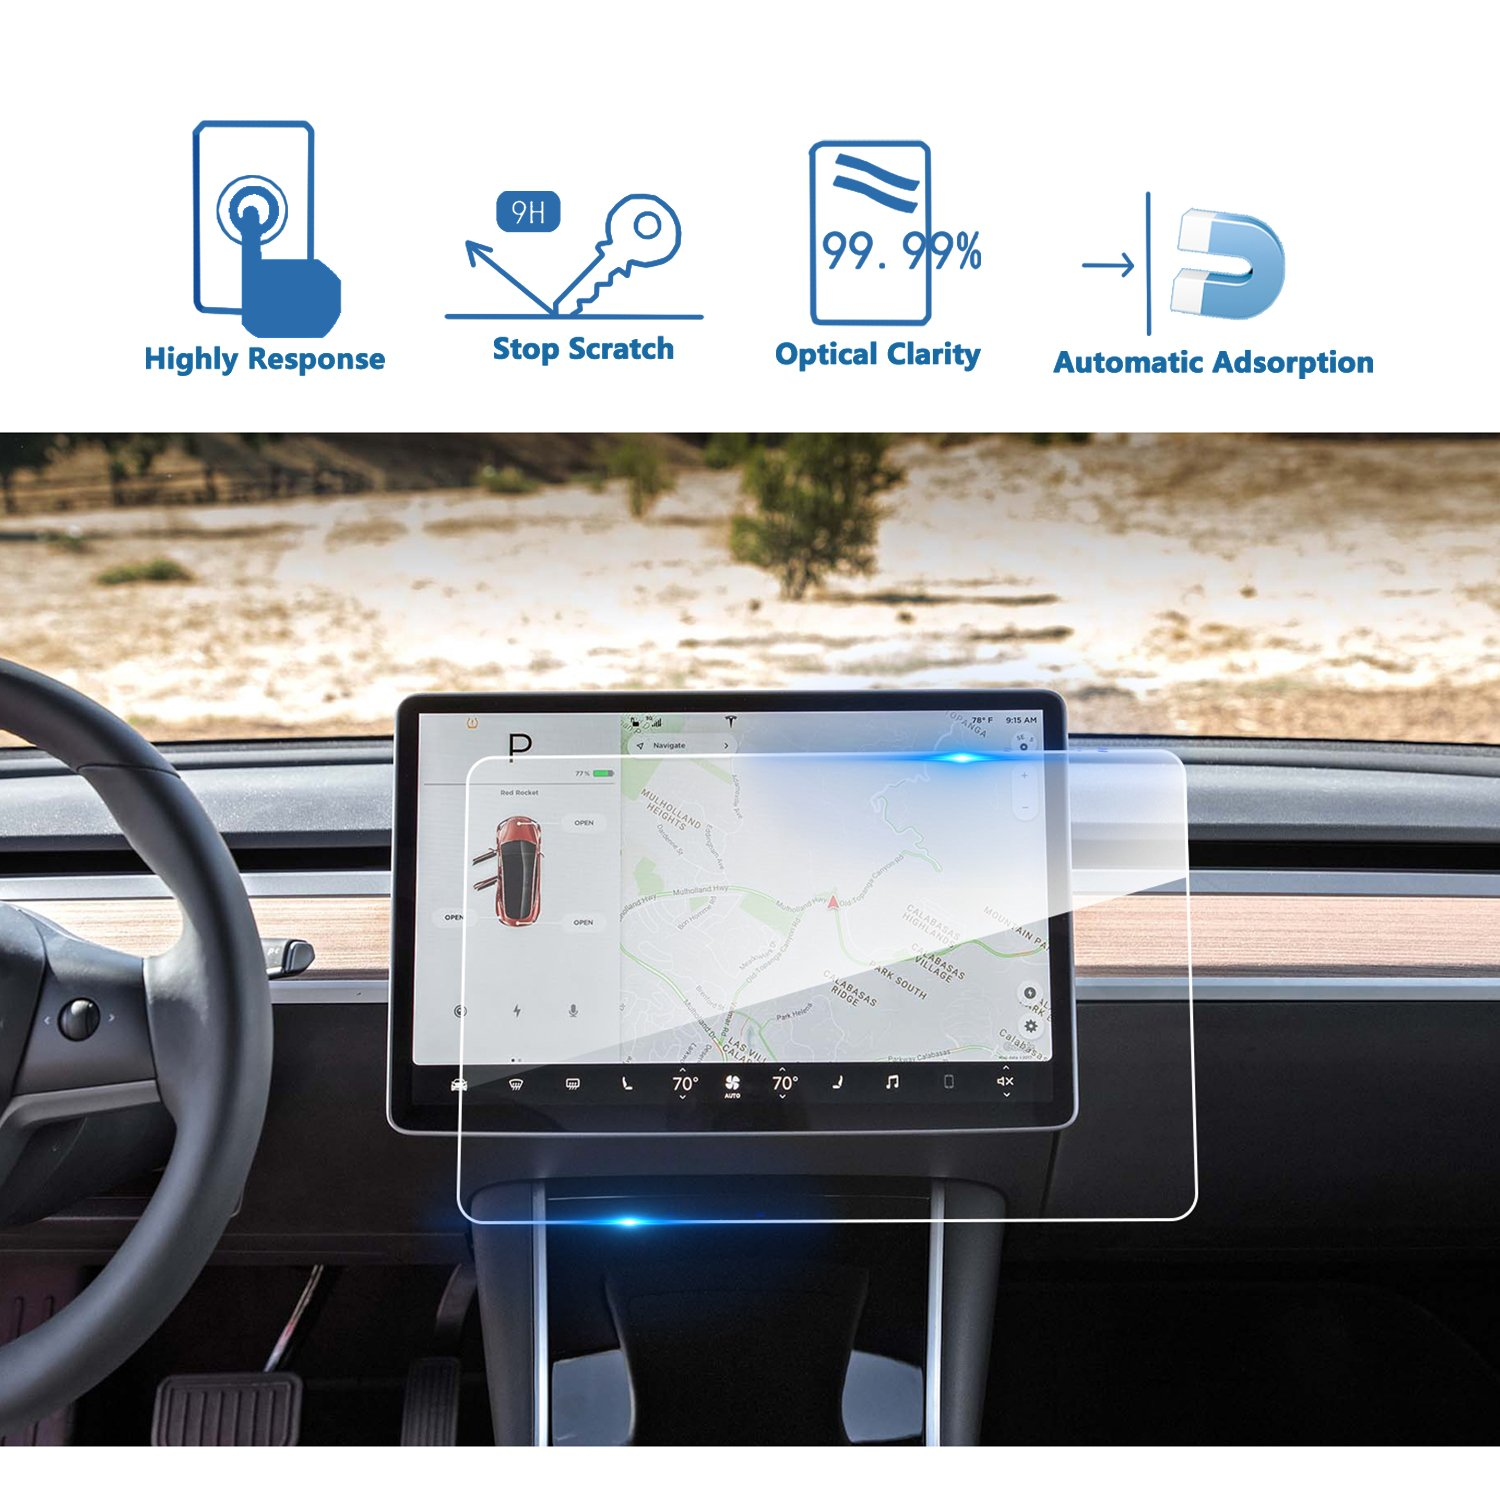 9H Anti-Scratch Guard LiFan Tesla-Model-3-UPGRADE-2 P50 P65 P80 P80D Tempered Glass Infotainment Display Protective Film LFOTPP Tesla Model 3 15-Inch Center Touch Navi Screen Protector